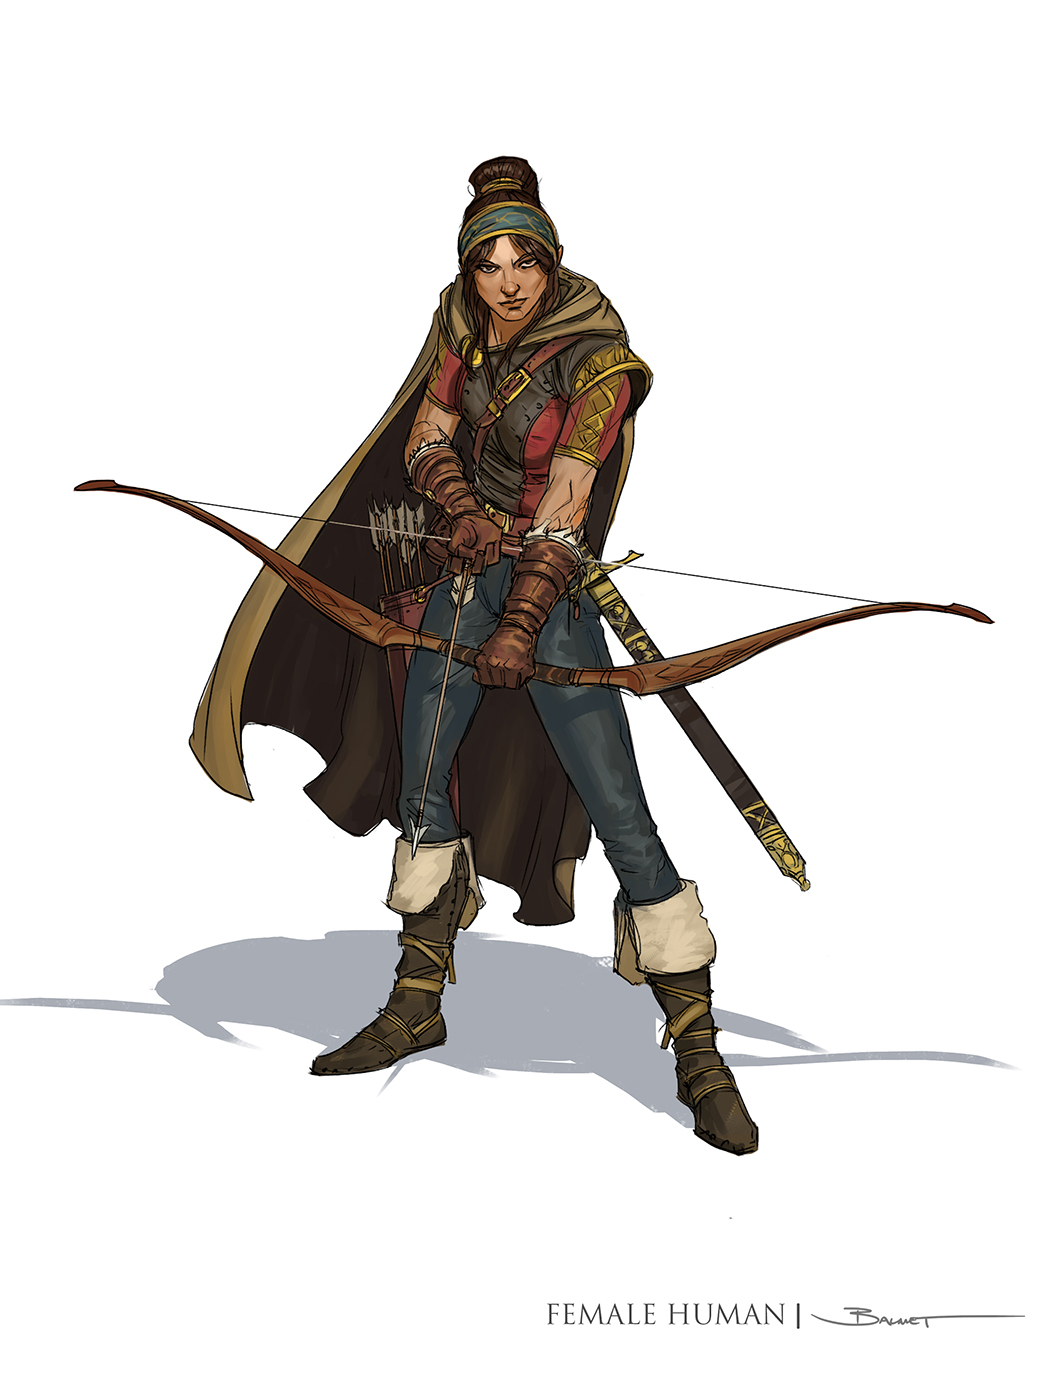 Human Ranger by John-Paul Balmet : ReasonableFantasy